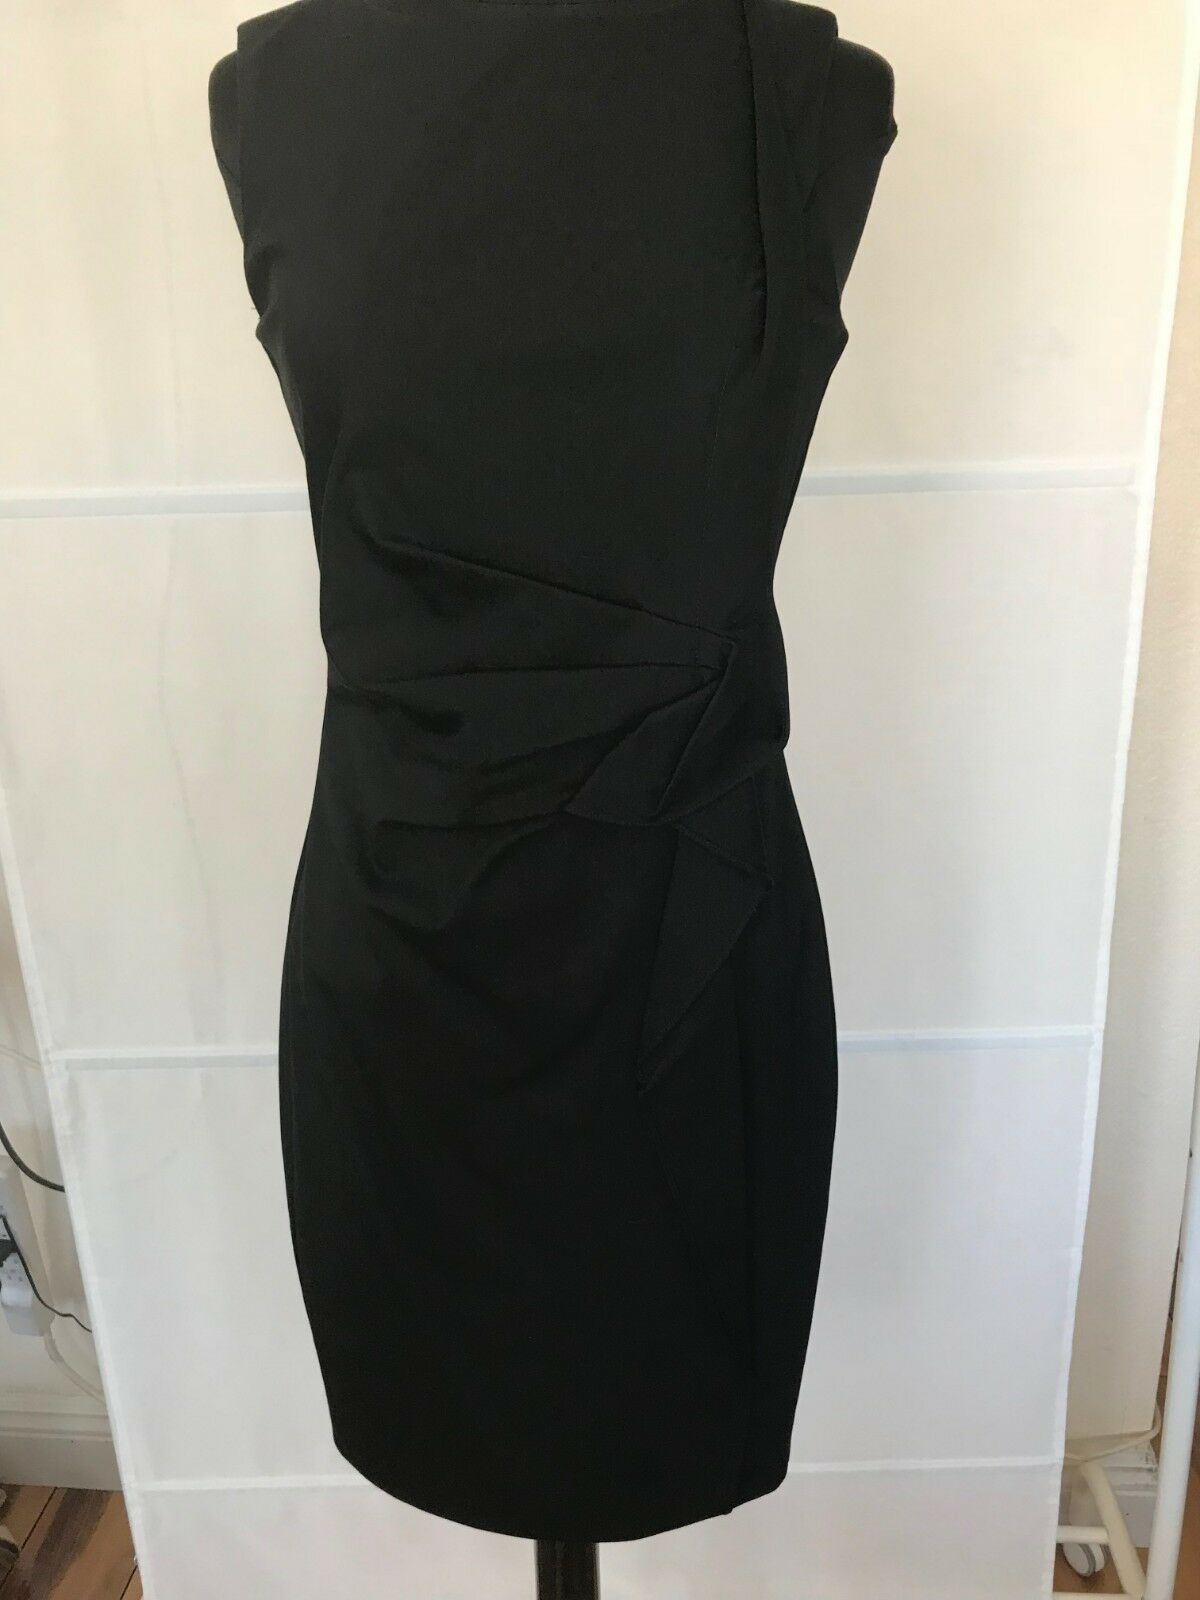 DIANE VON FURSTENBERG DRESS WITH TAGS TAGS TAGS SIZE PS, PXS  445 033868